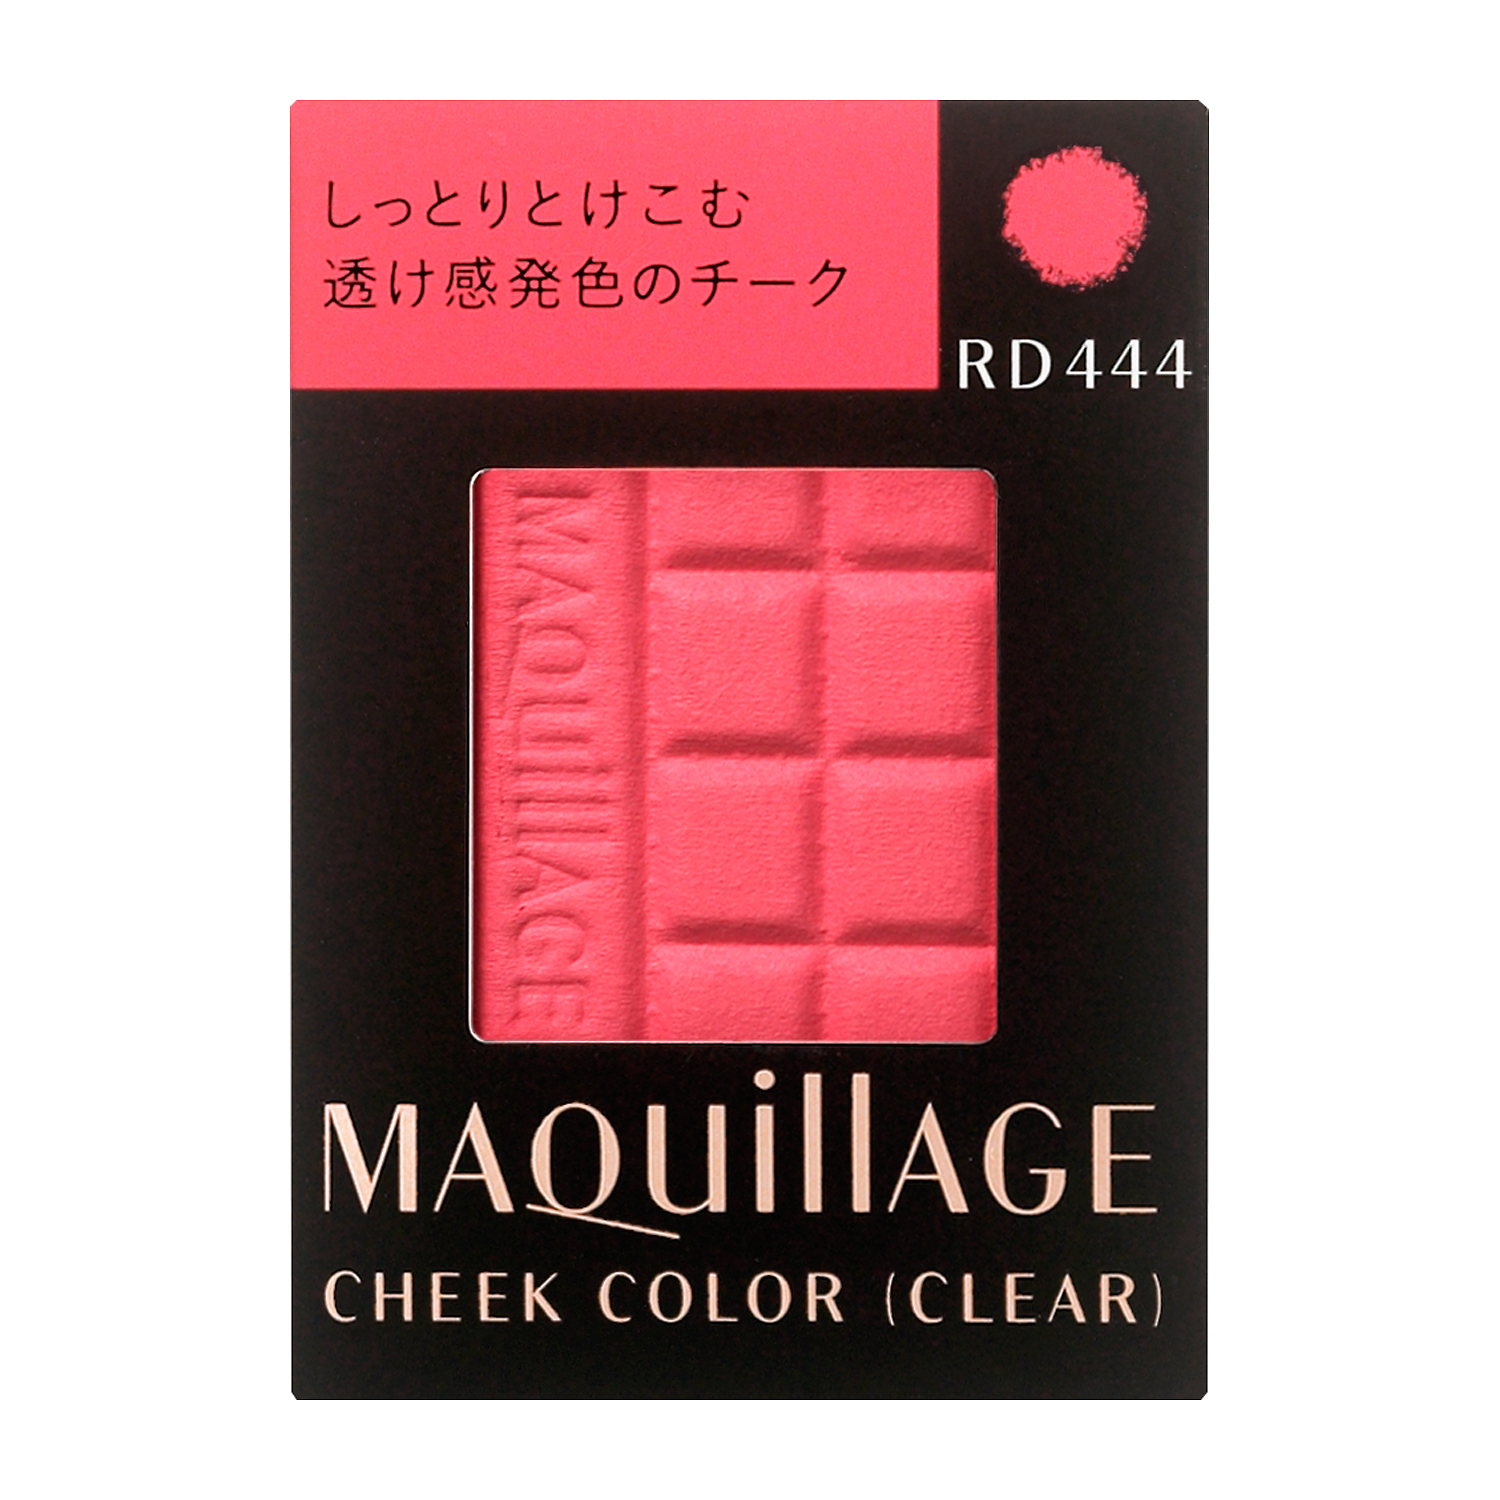 MAQuillAGE チークカラー (クリア) RD444 (レフィル)